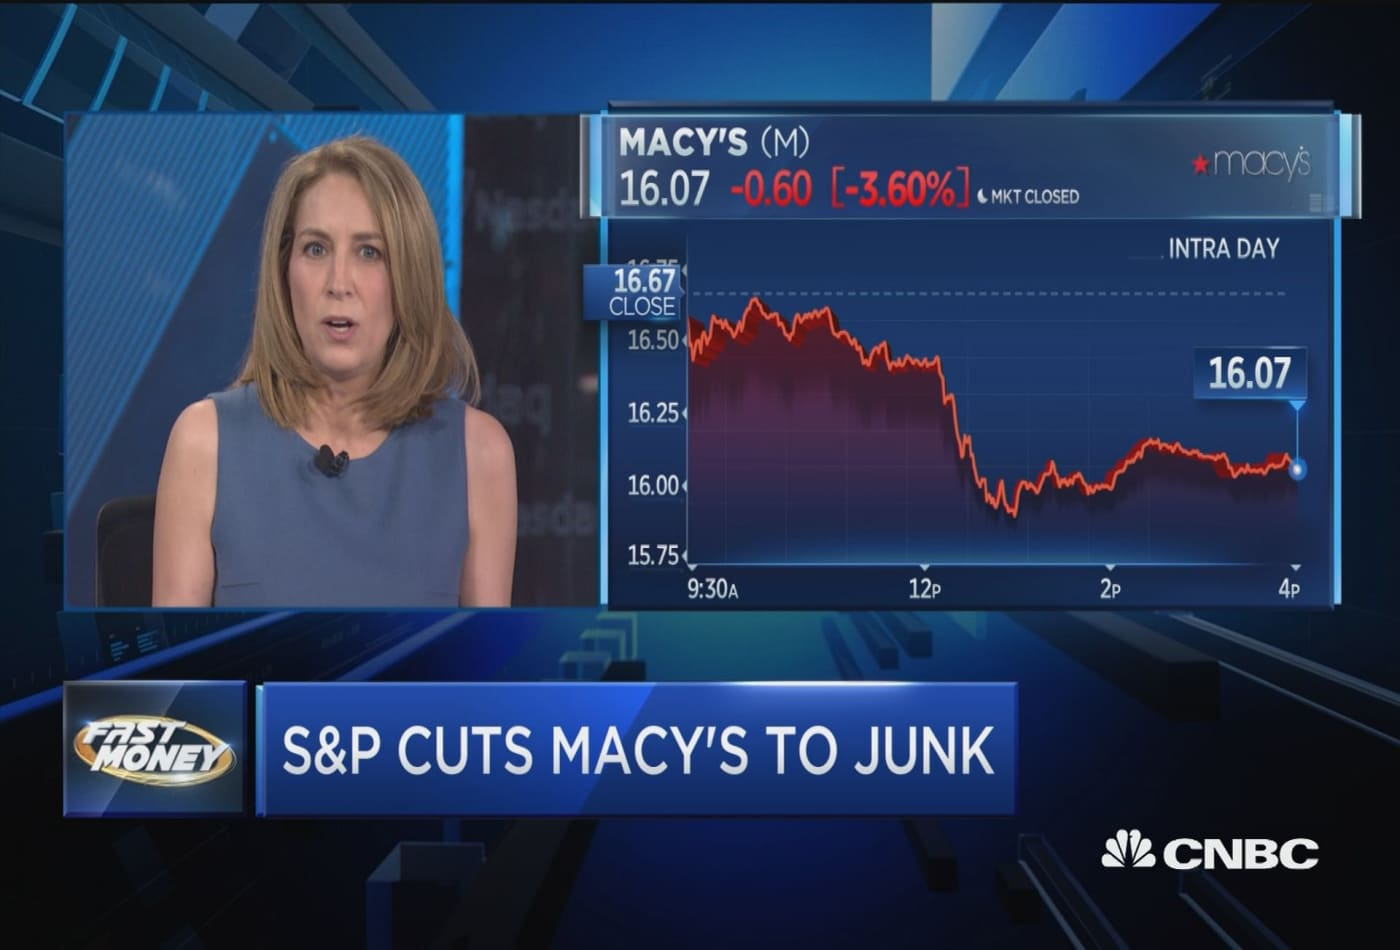 S&P cuts Macy's to junk